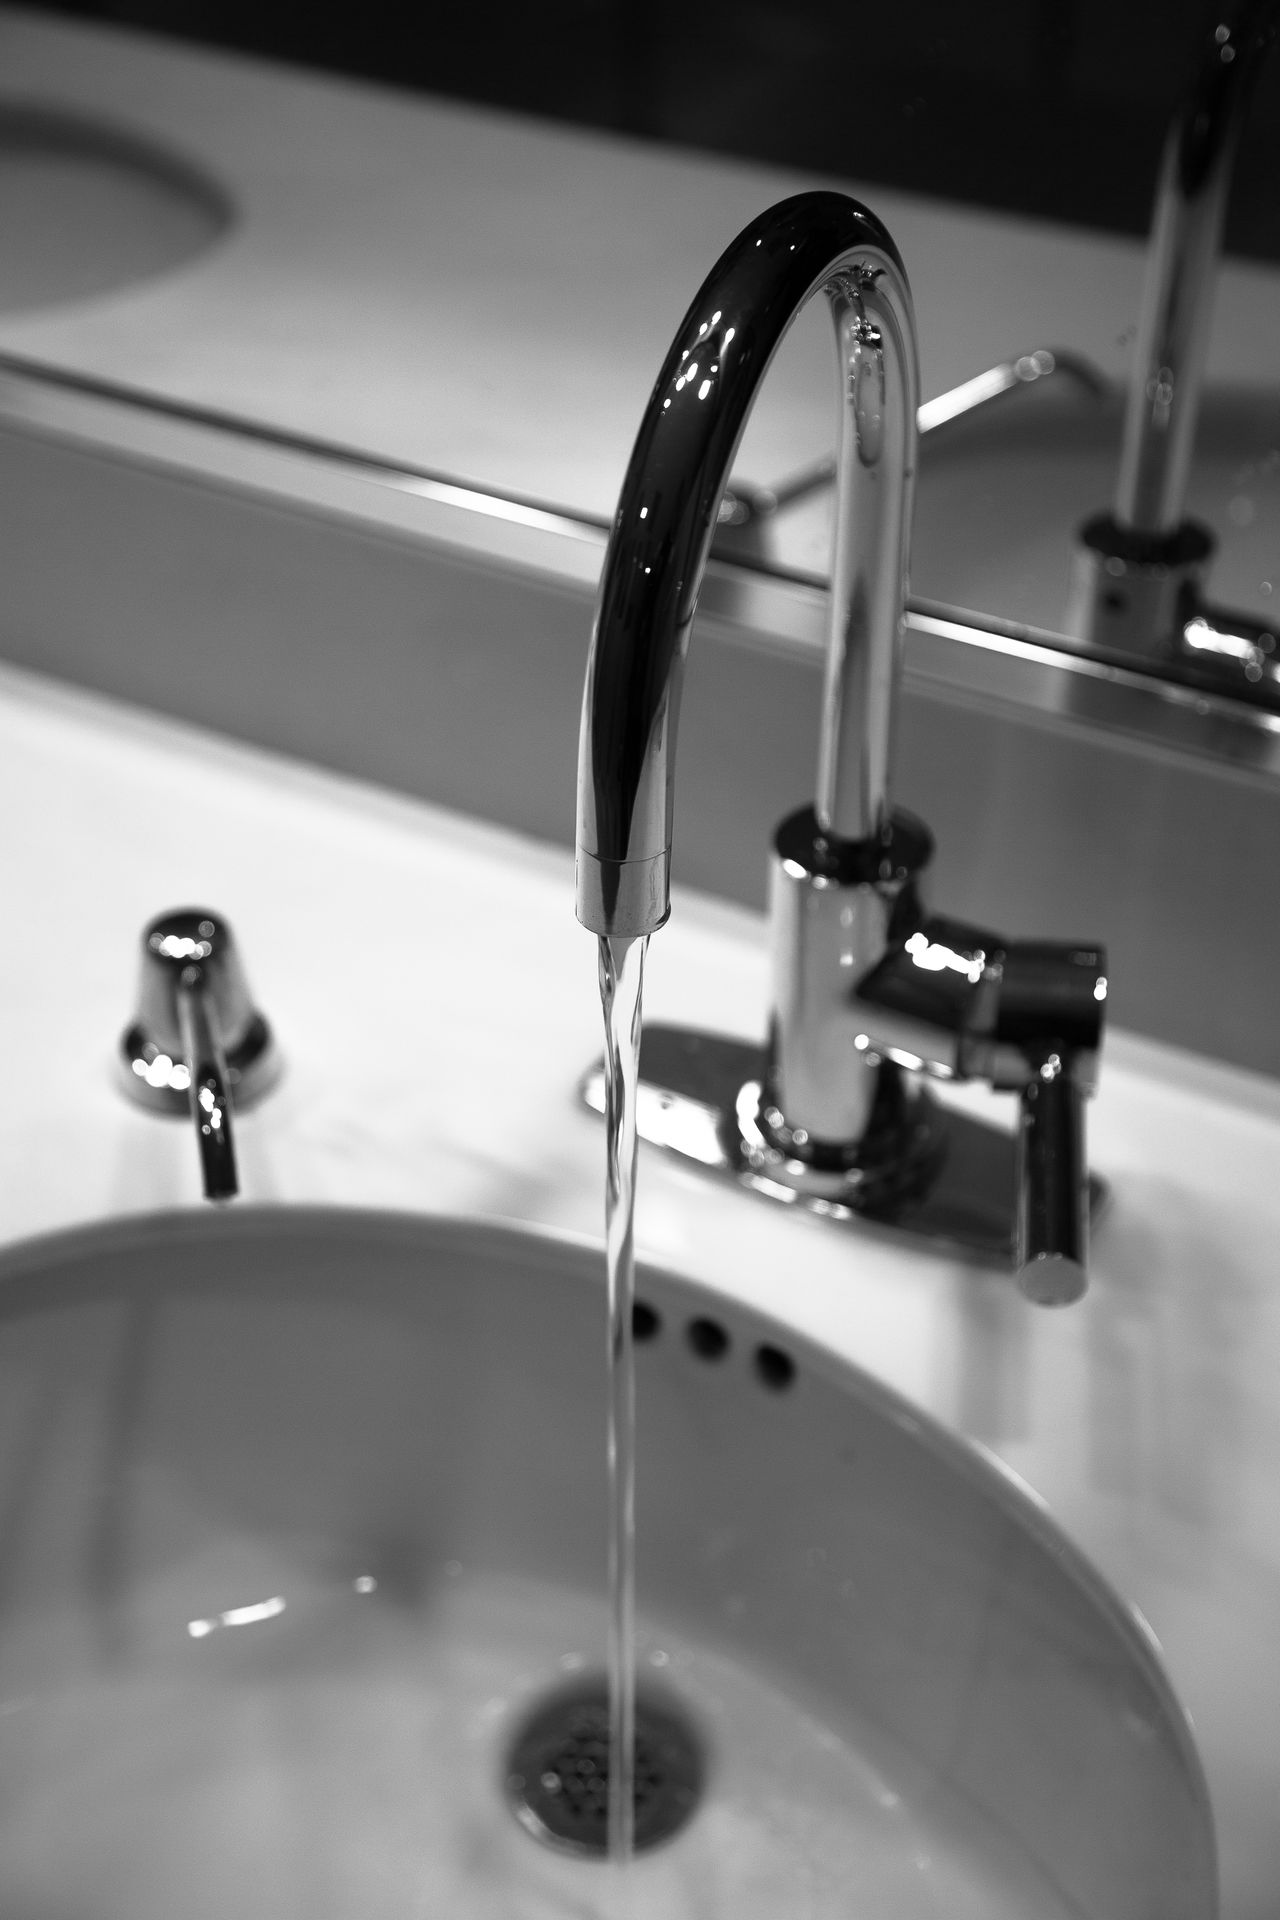 Water_collection Faucet Monochrome Everyday Lives